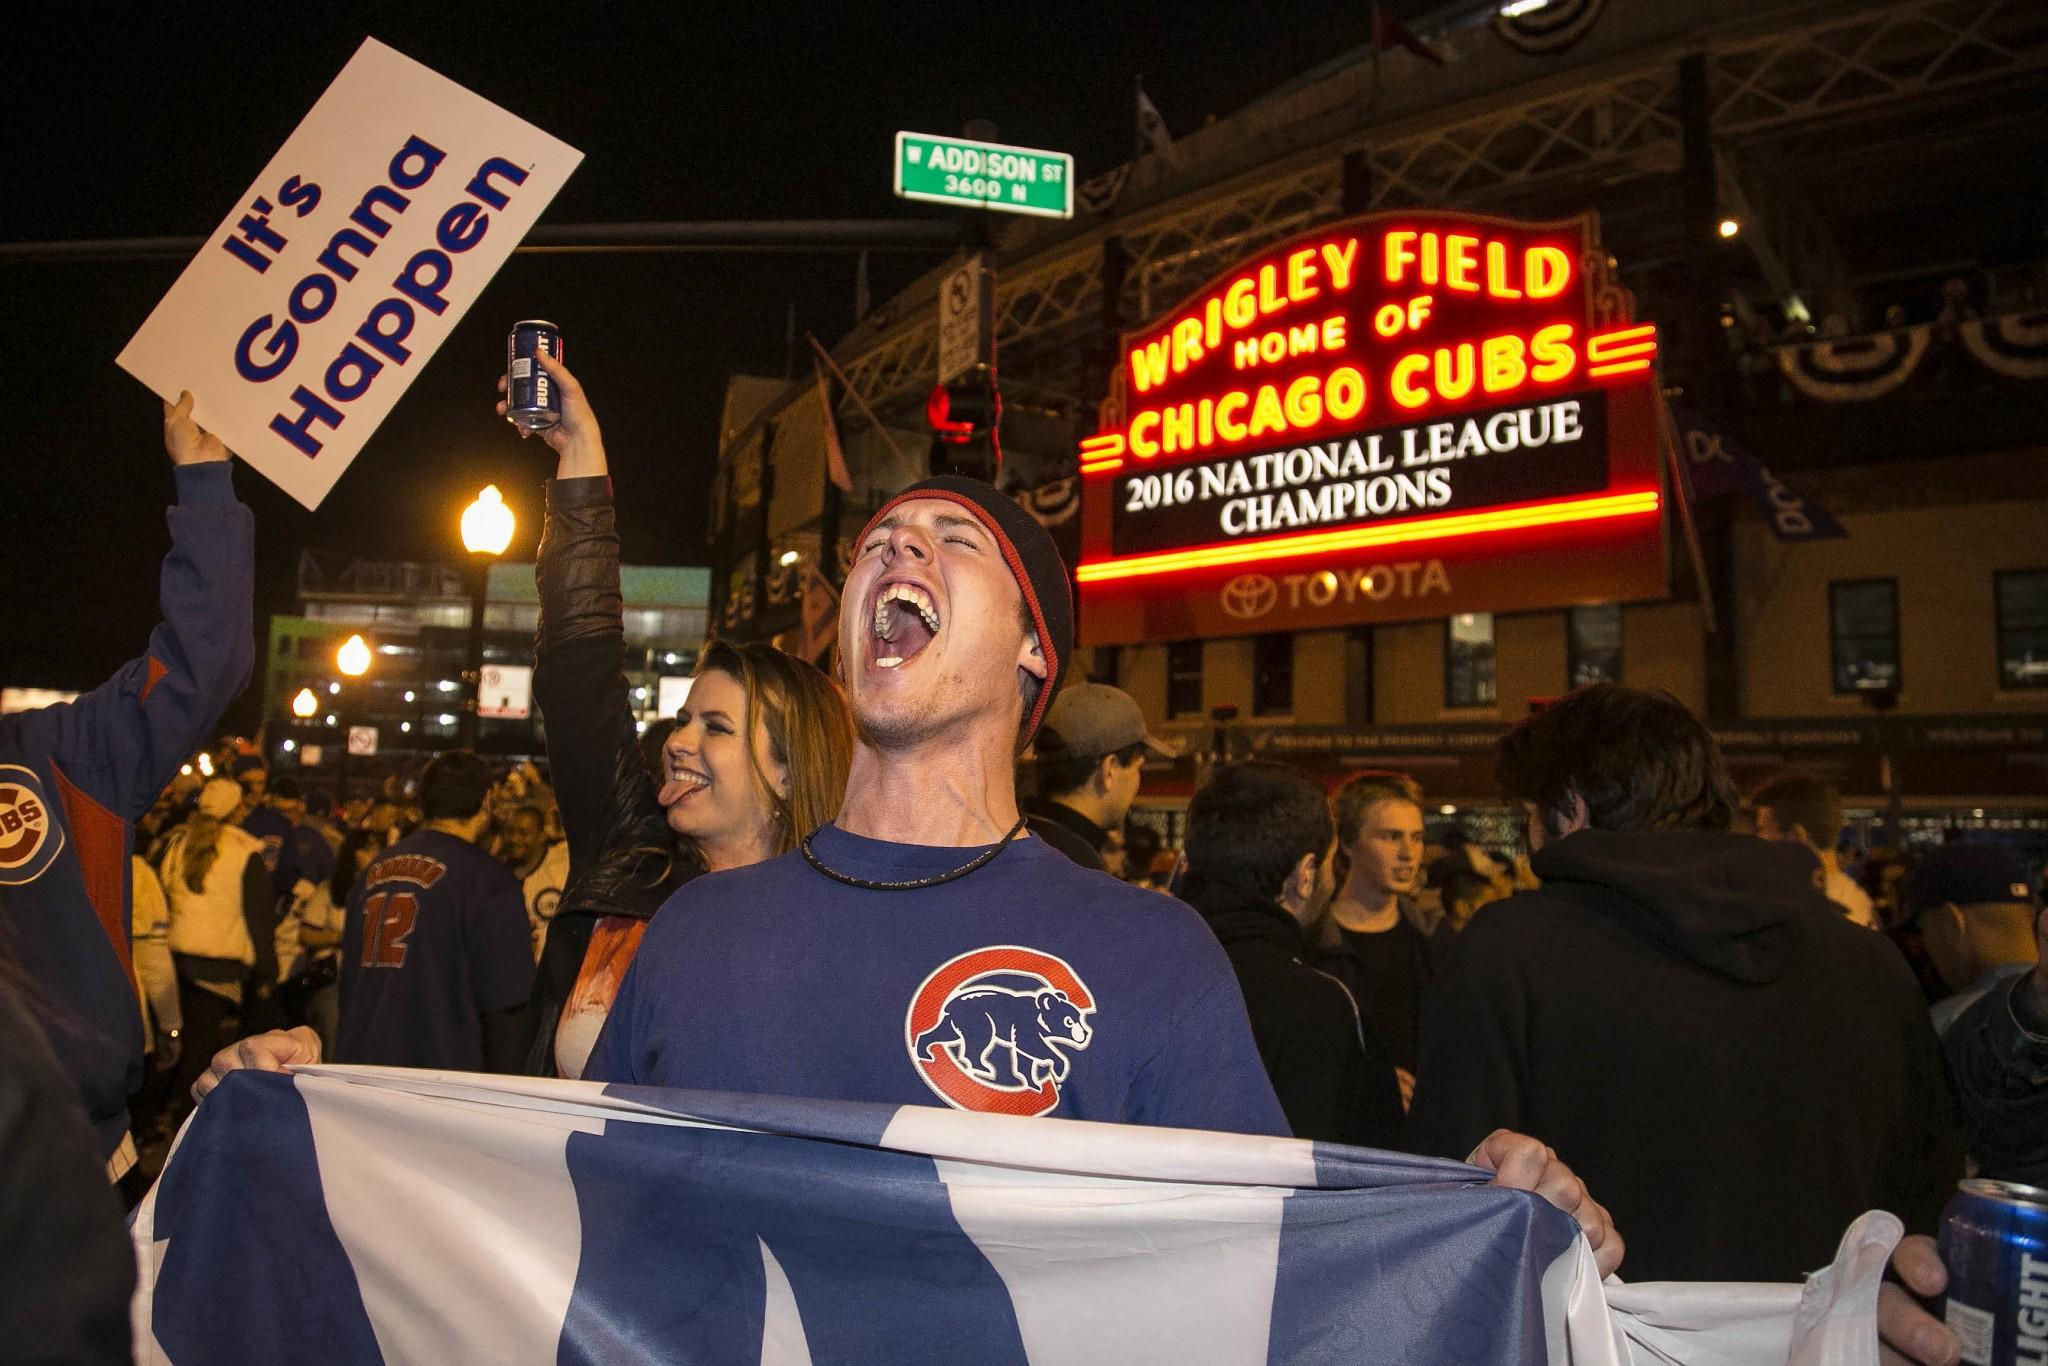 What it's like to be a White Sox fan when the Cubs are in the World Series